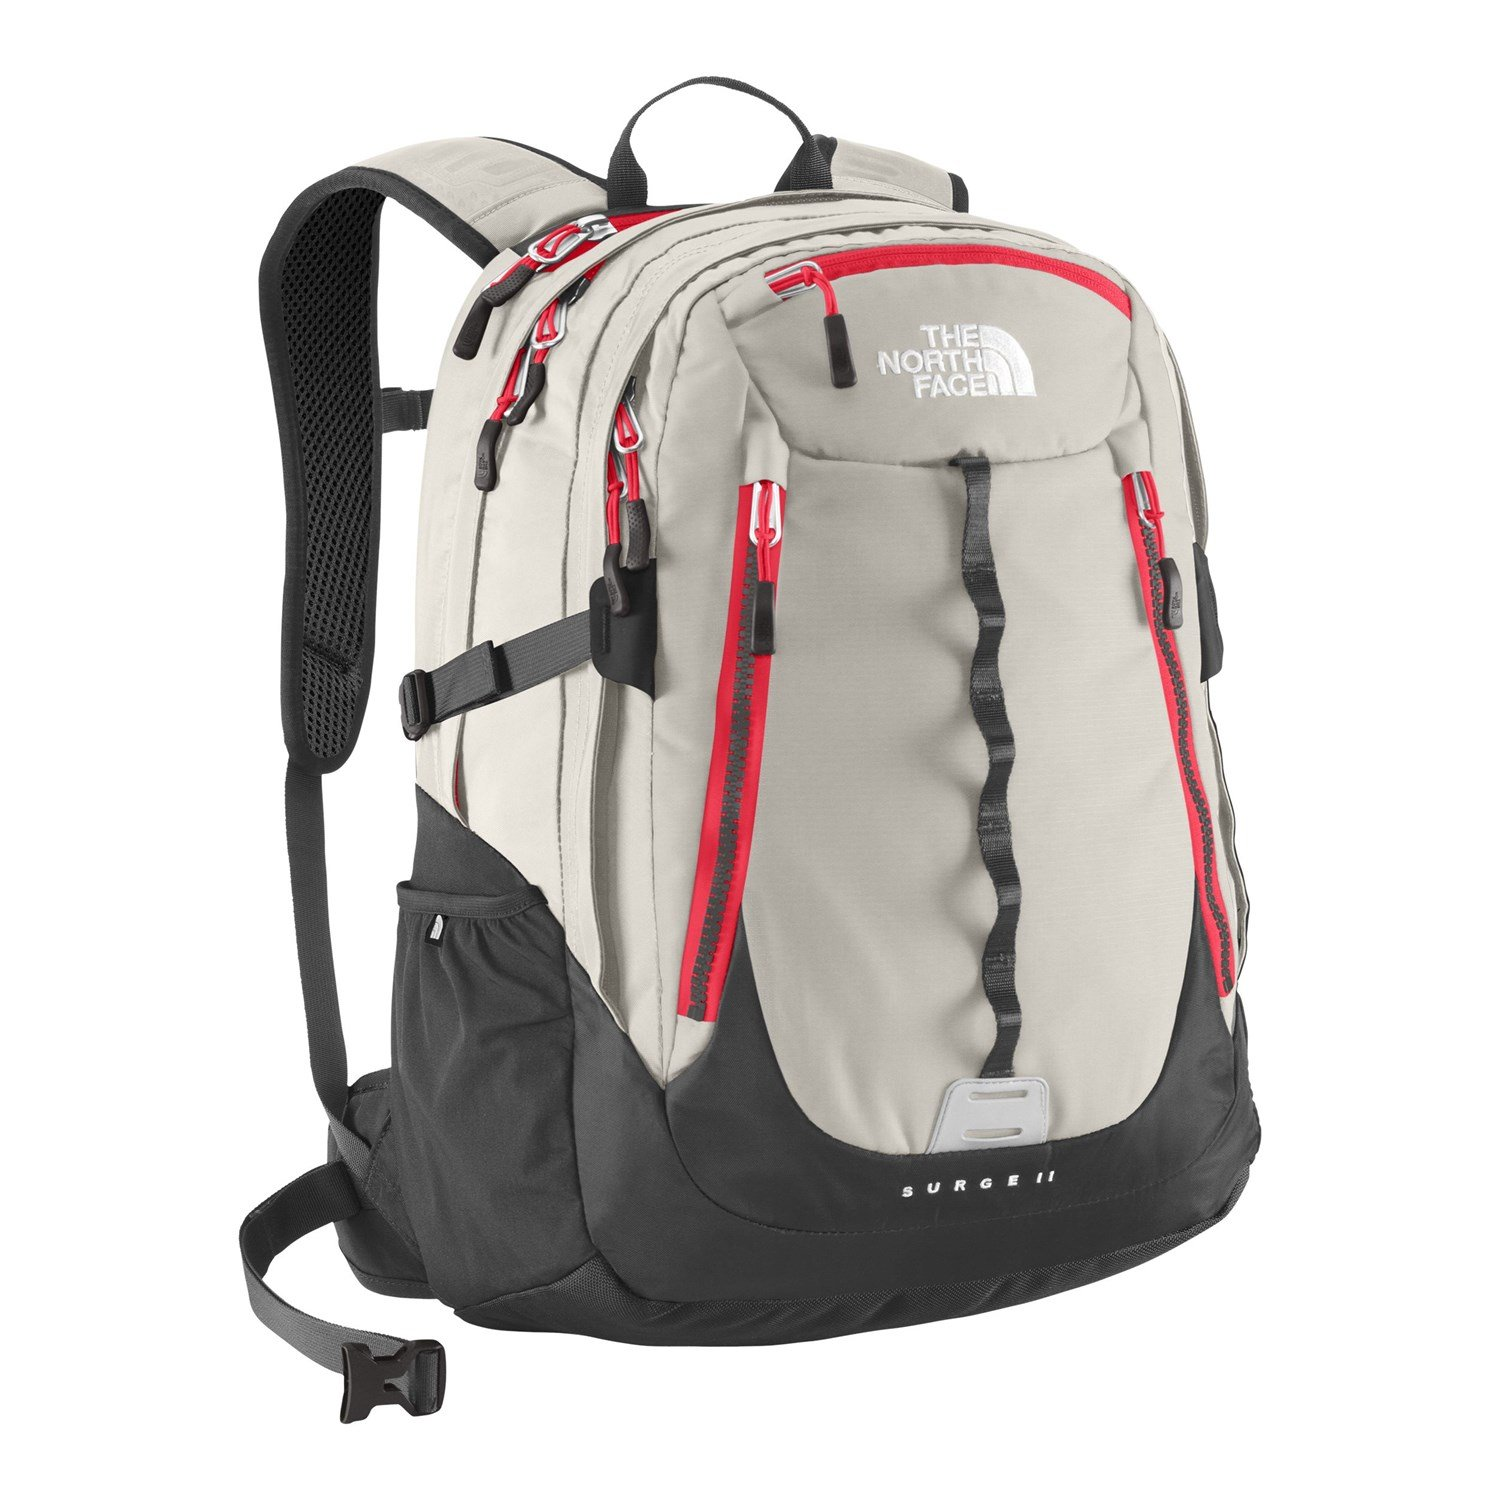 06dad798f The North Face Surge II Backpack